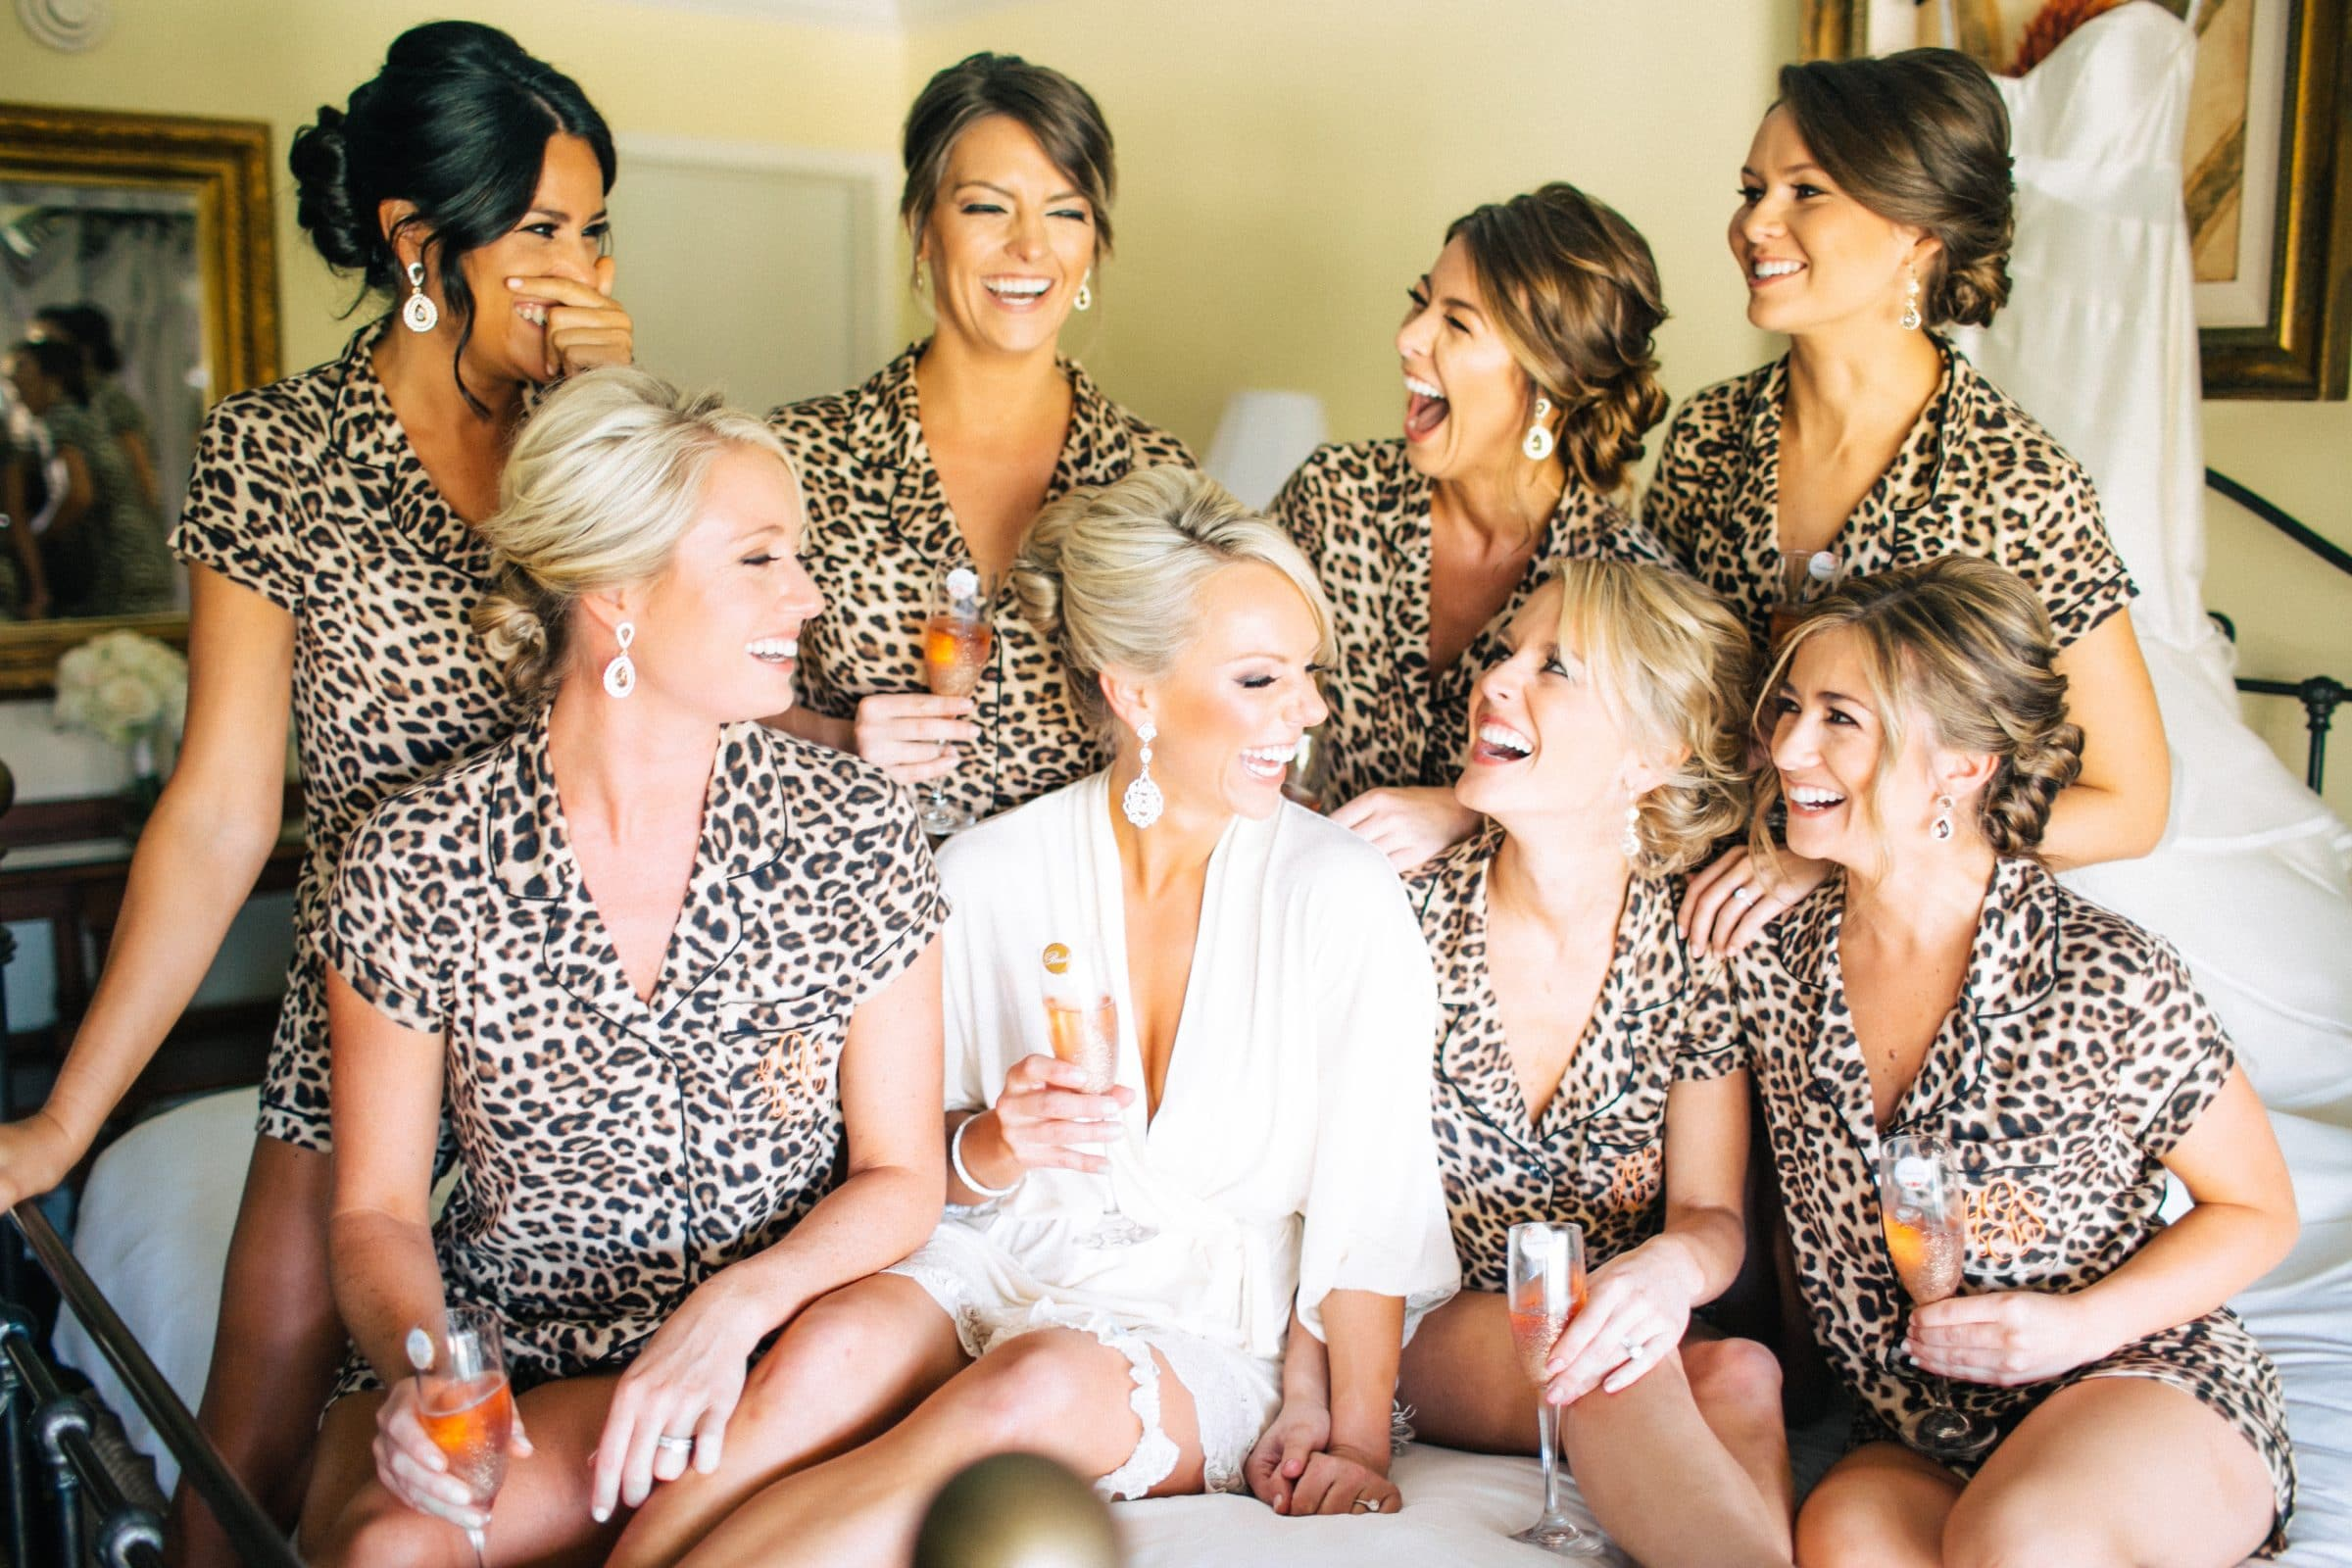 Bride and bridesmaids in leopard print pjs laughing while drinking champagne